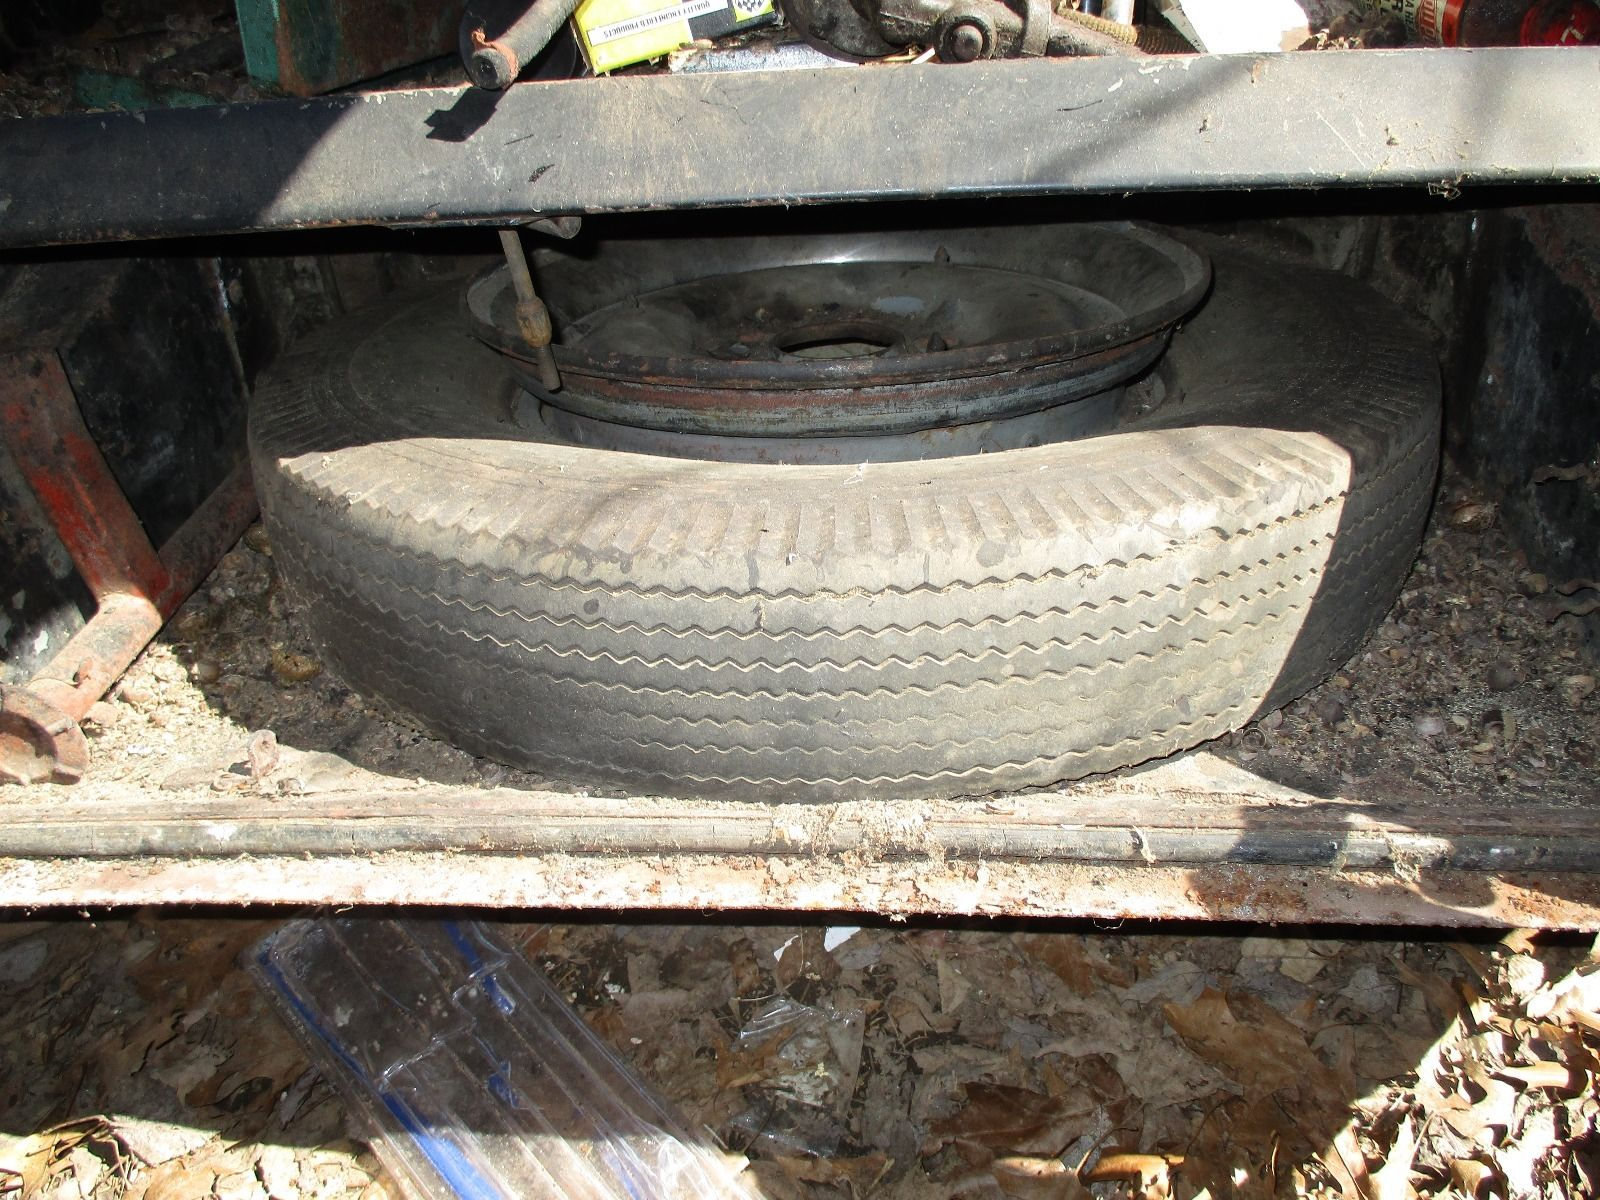 The spare tyre might need replacement!